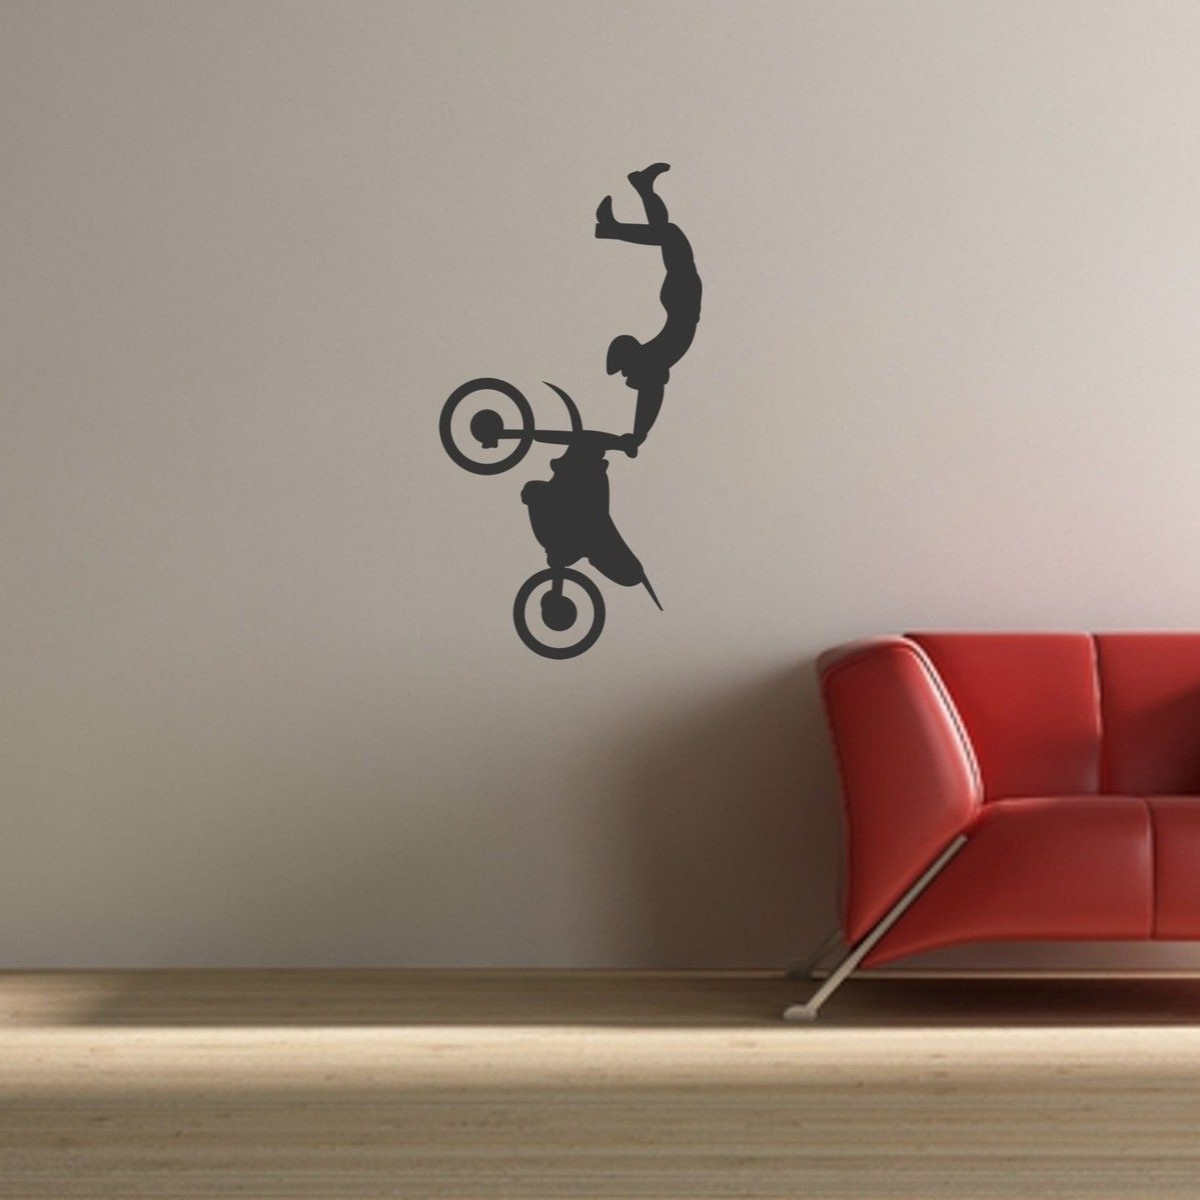 Motorcycle motocross stunt action vinyl sticker play room  boy bedroom  decoration moto bike glue wall. Online Get Cheap Motocross Wall Decor  Aliexpress com   Alibaba Group